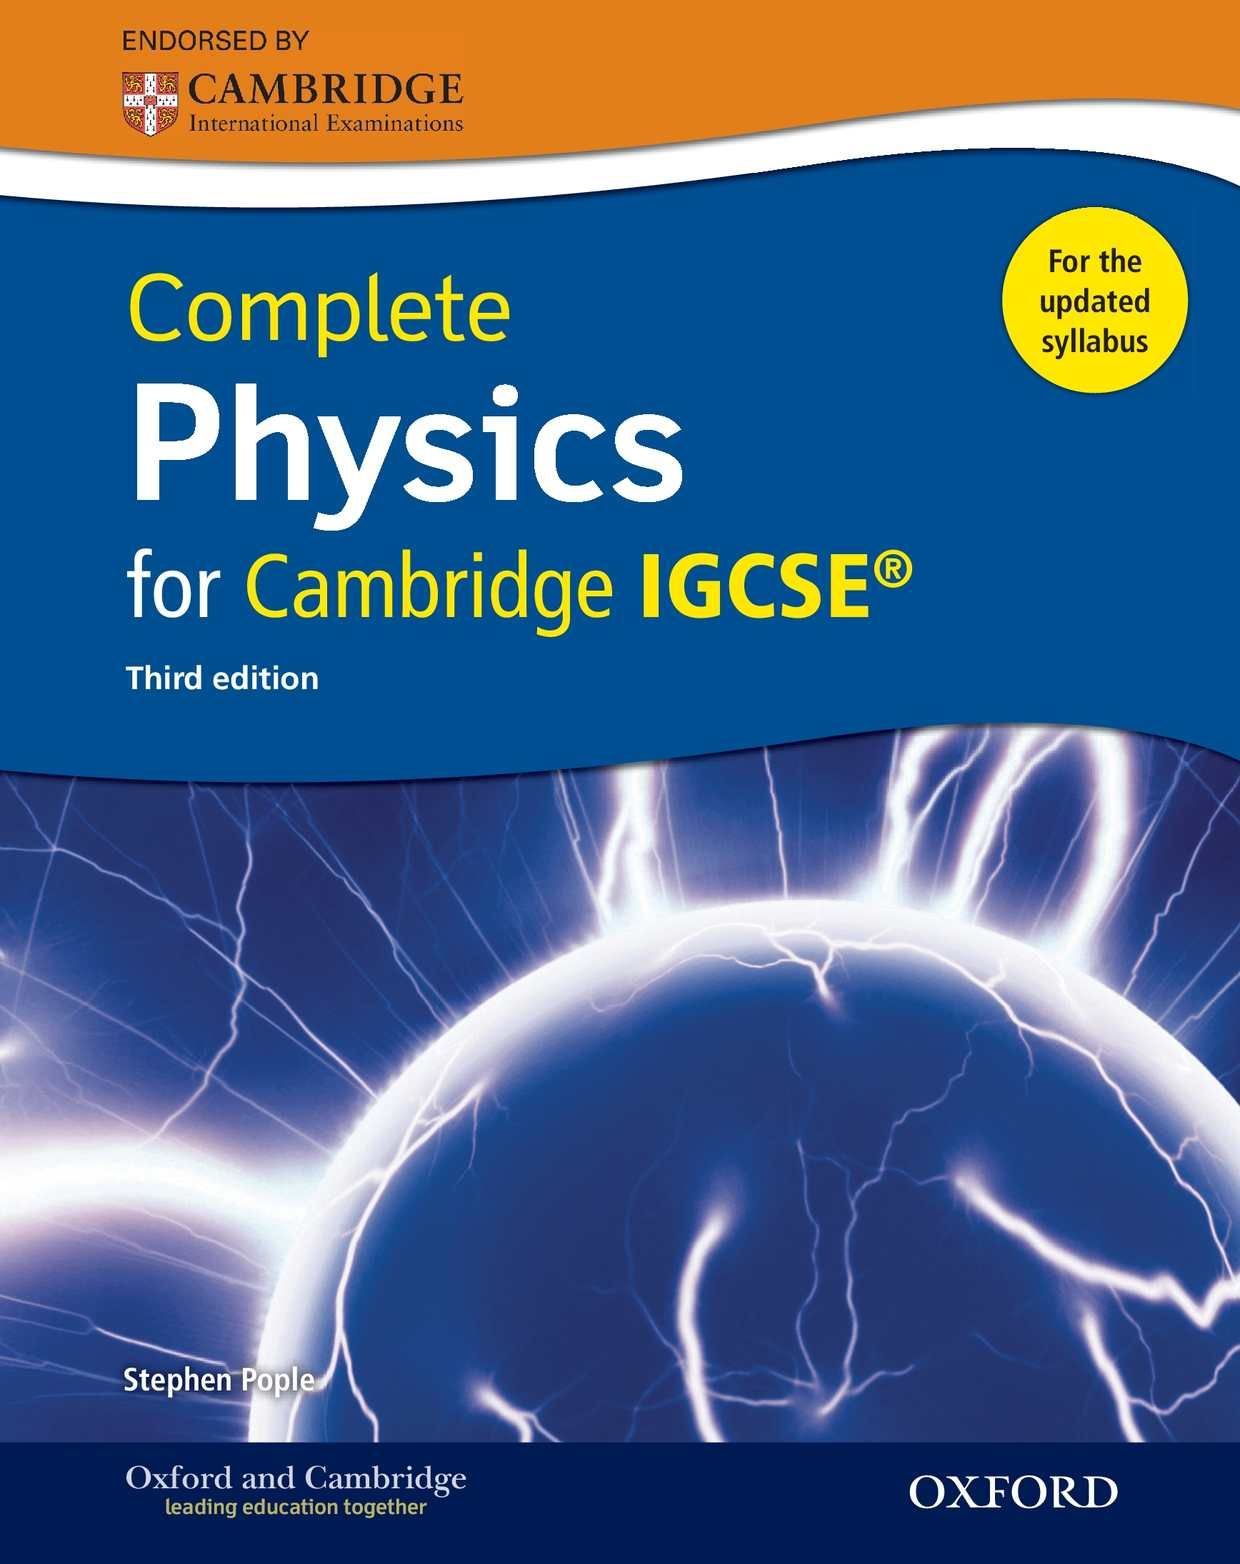 Complete Physics for Cambridge IGCSE® | Calameo PDF Download